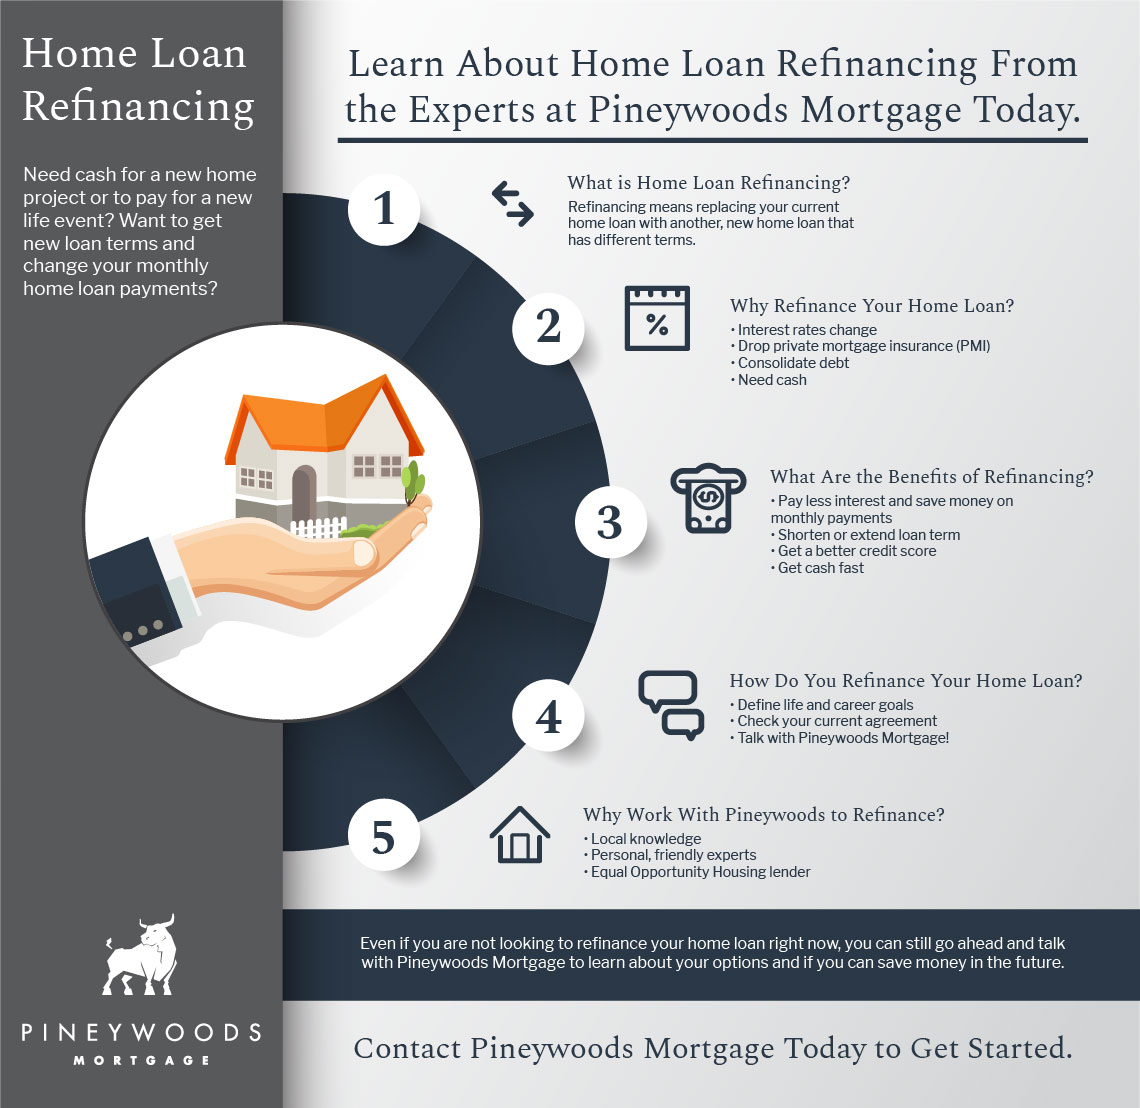 An infographic detailing reasons a homeowner should pursue refinancing their home loan.